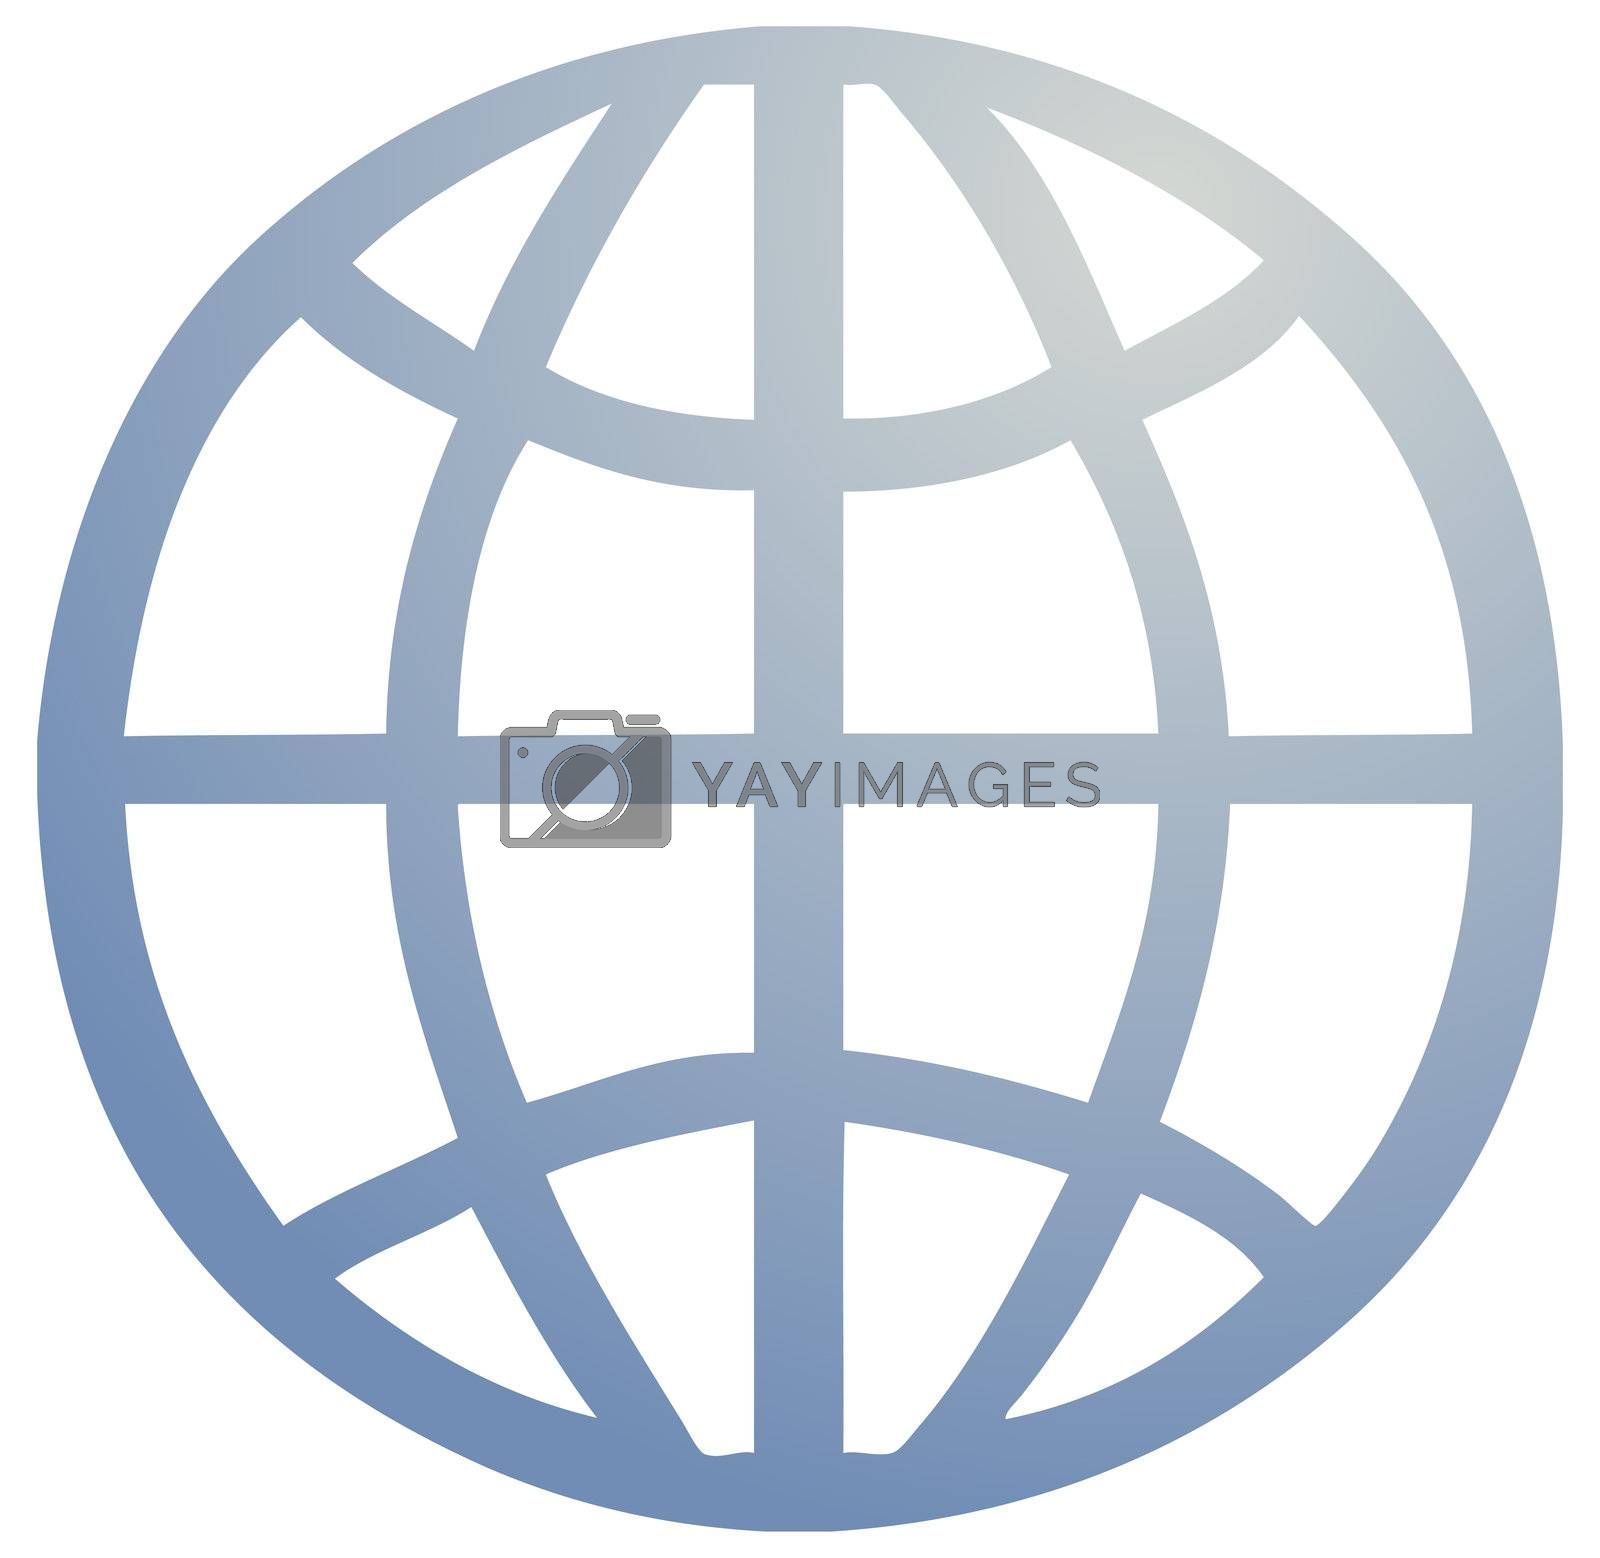 Royalty free image of Global symbol by kgtoh